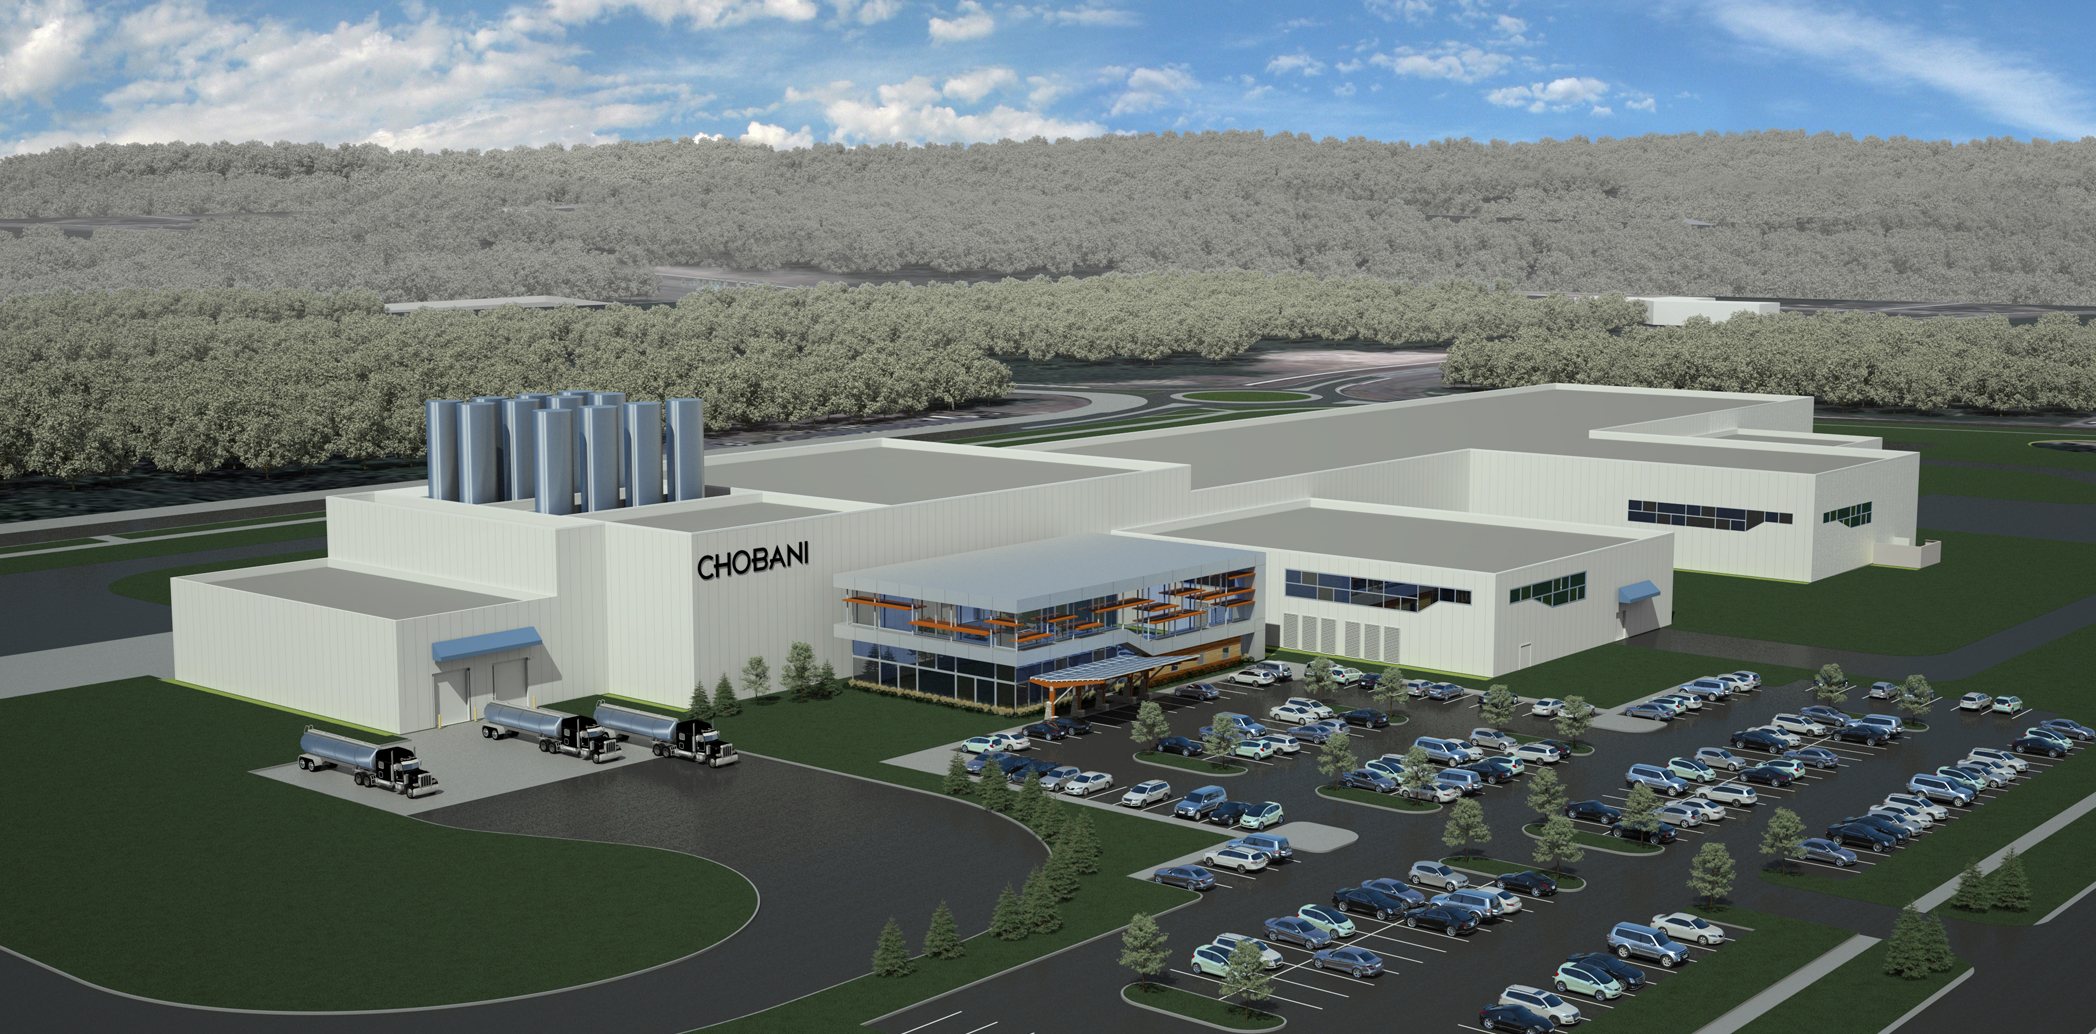 Chobani Yogurt Facility Conceputal Design